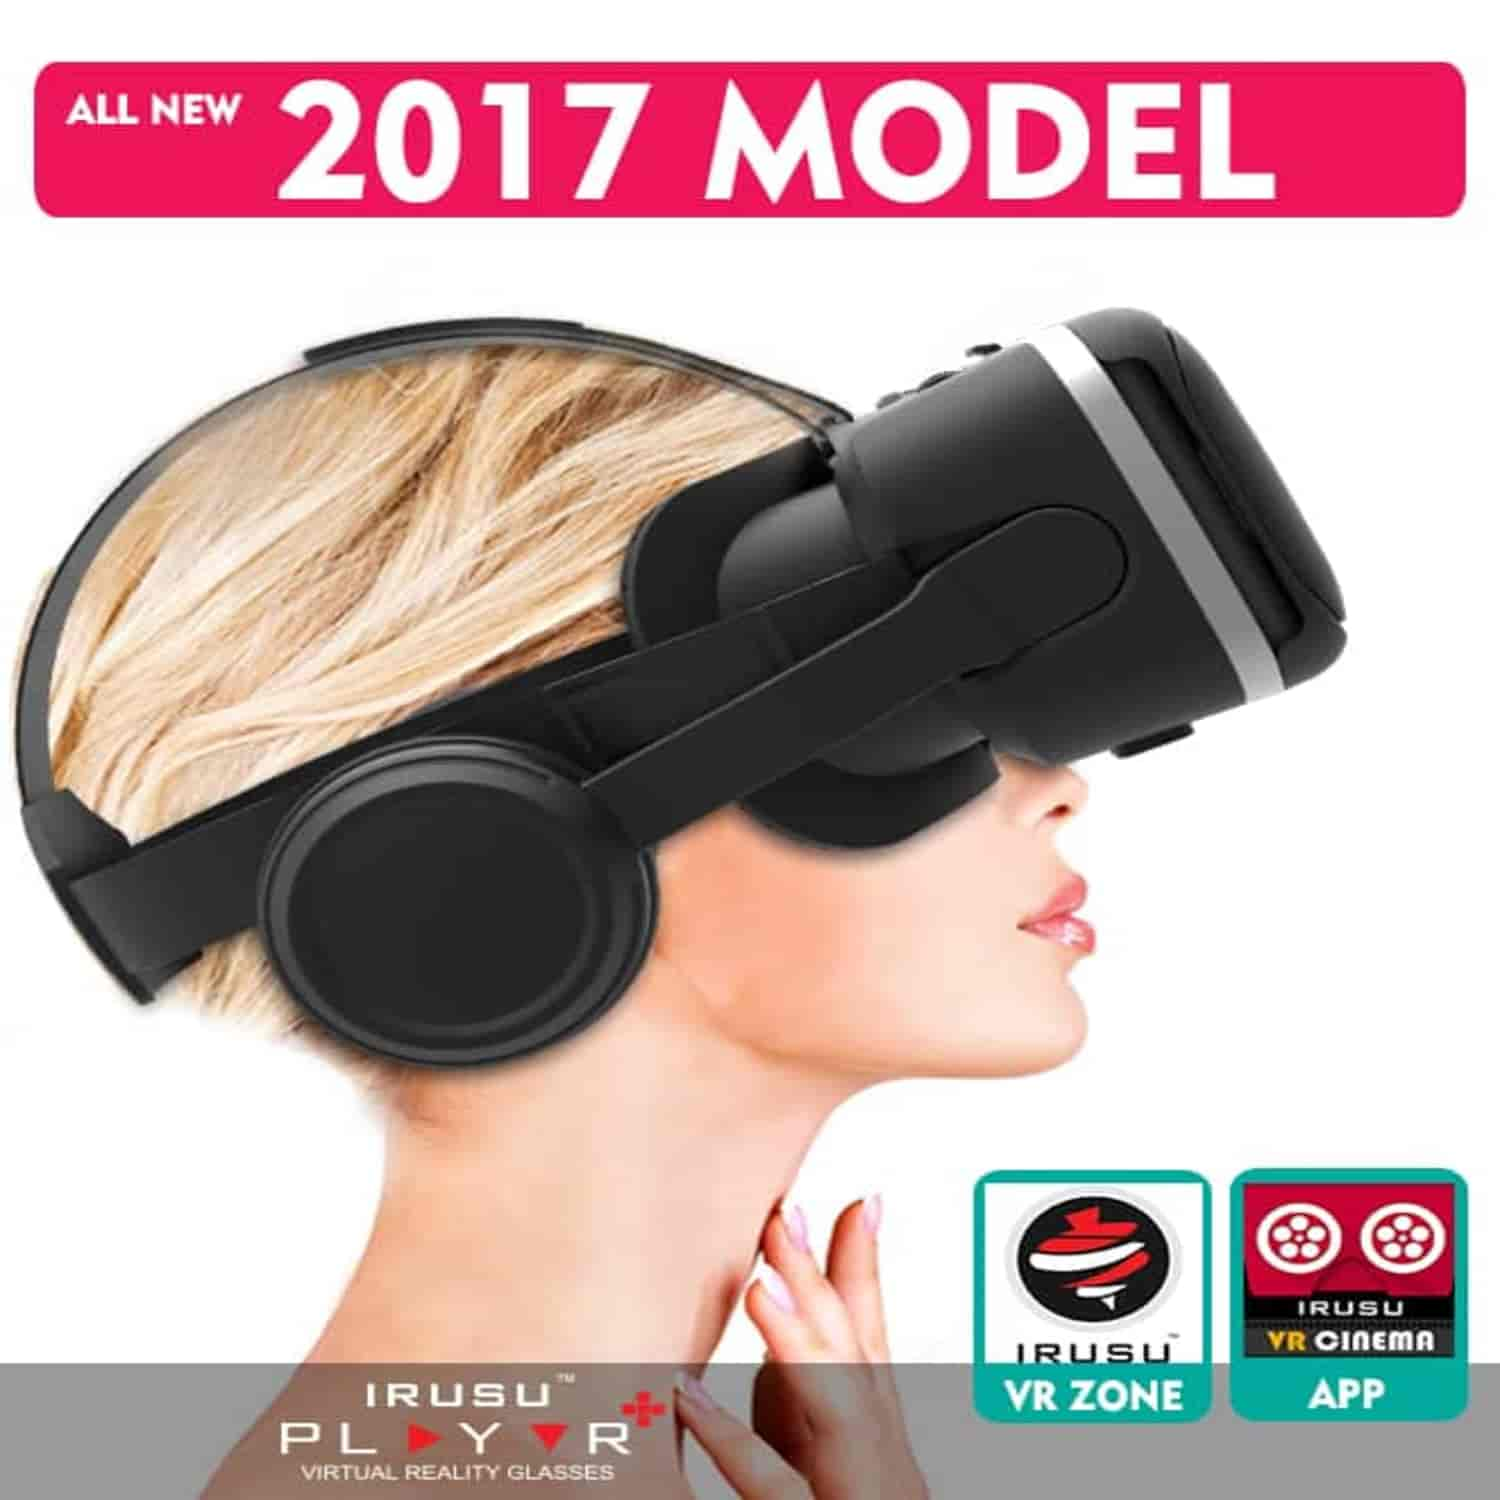 Irusu play vr plus vr headset in india for mobiles